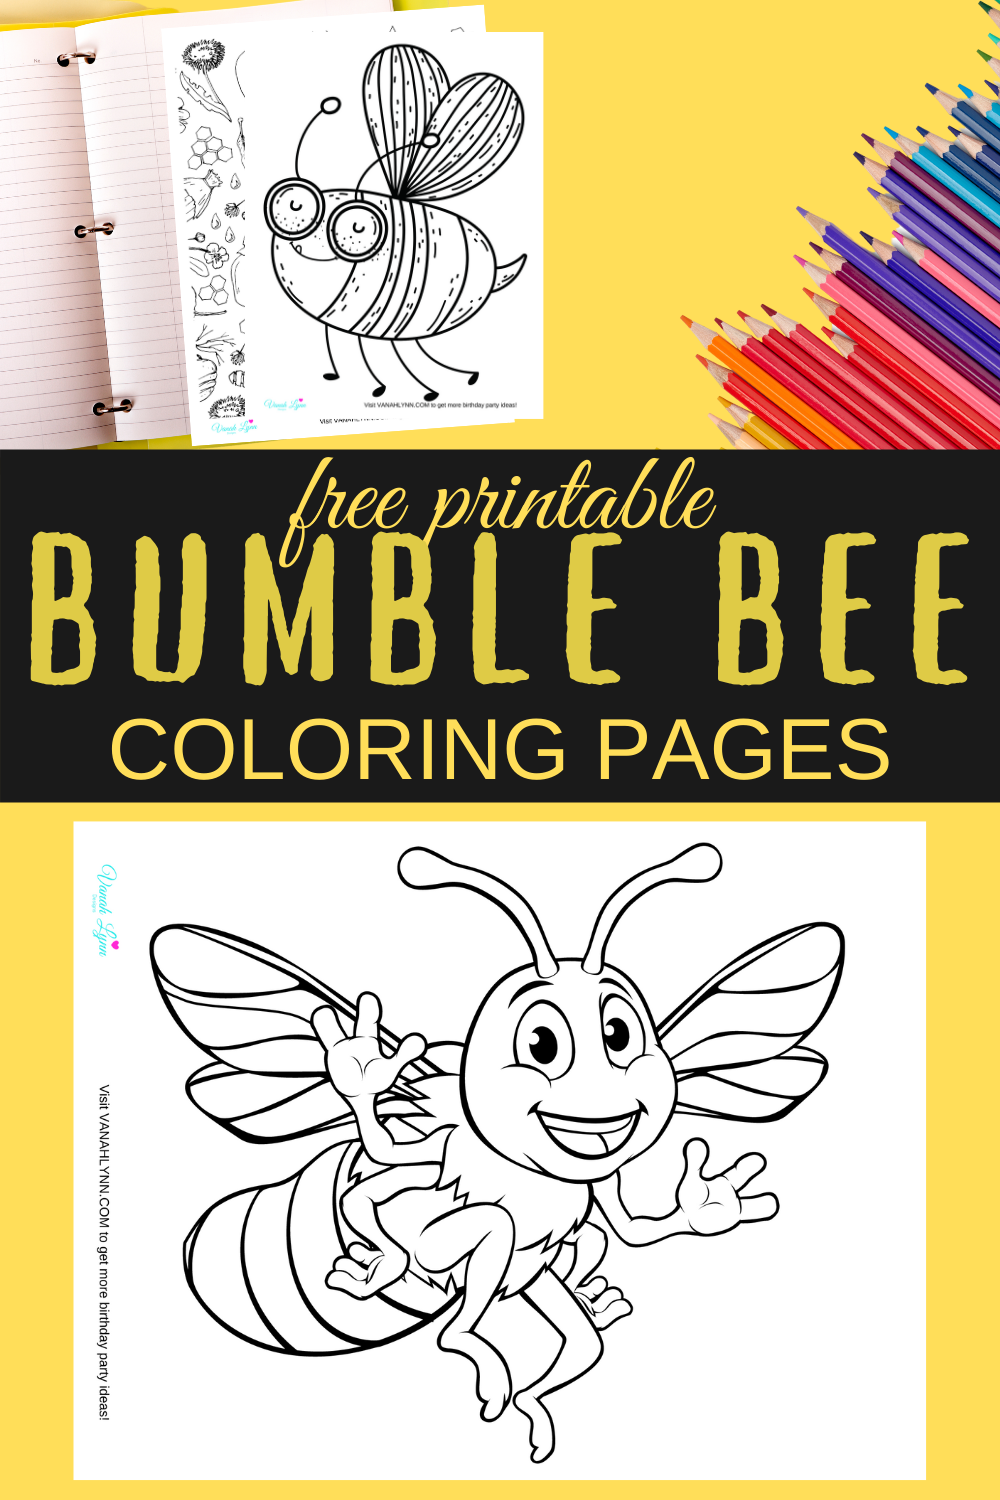 free printable bumble bee coloring pages for a birthday party